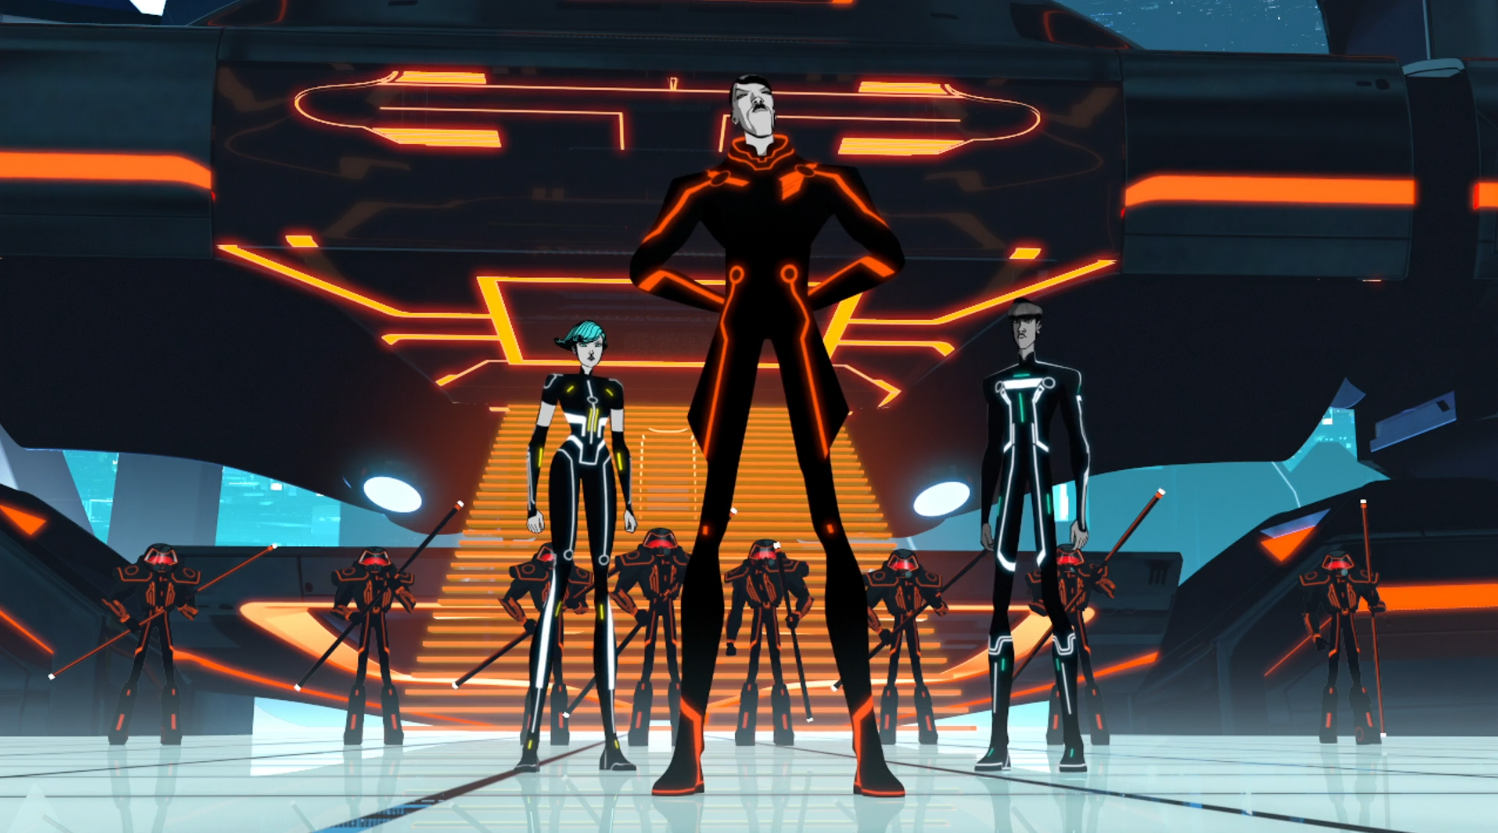 Pavel takes over Able's garage - Terminal - Terminal - Tron: Uprising